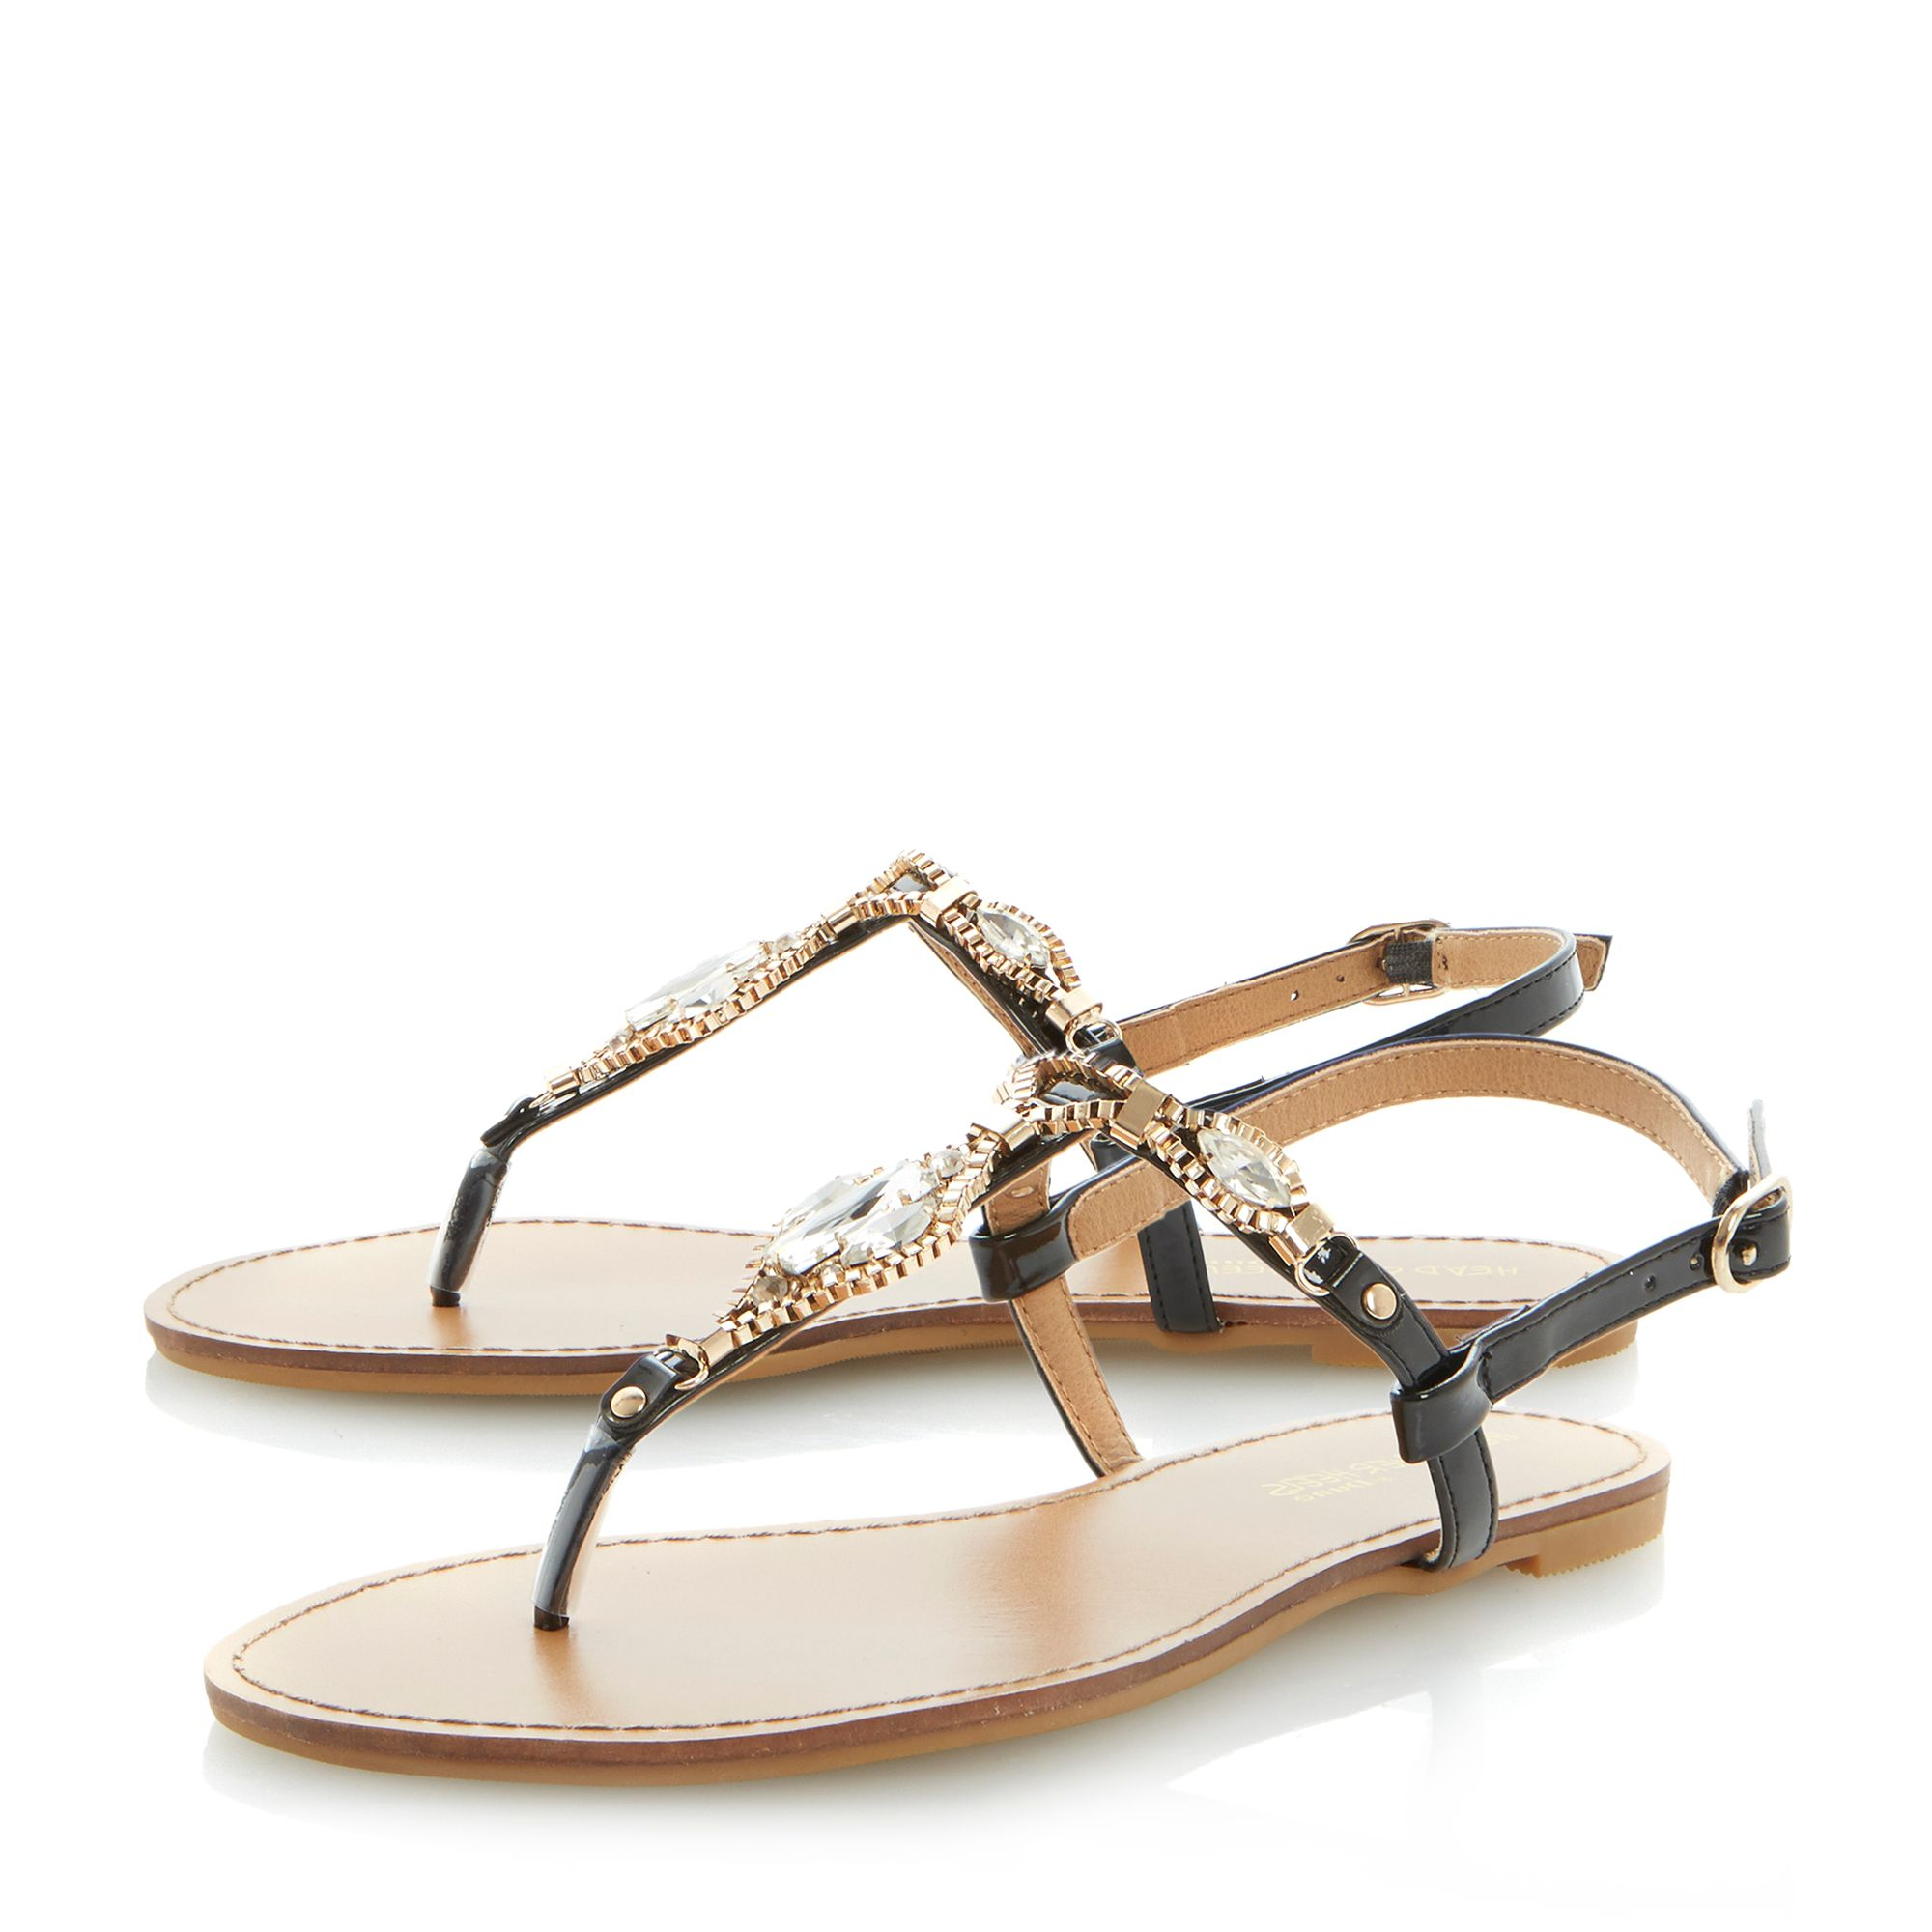 Hawaii jewelled t bar sandals